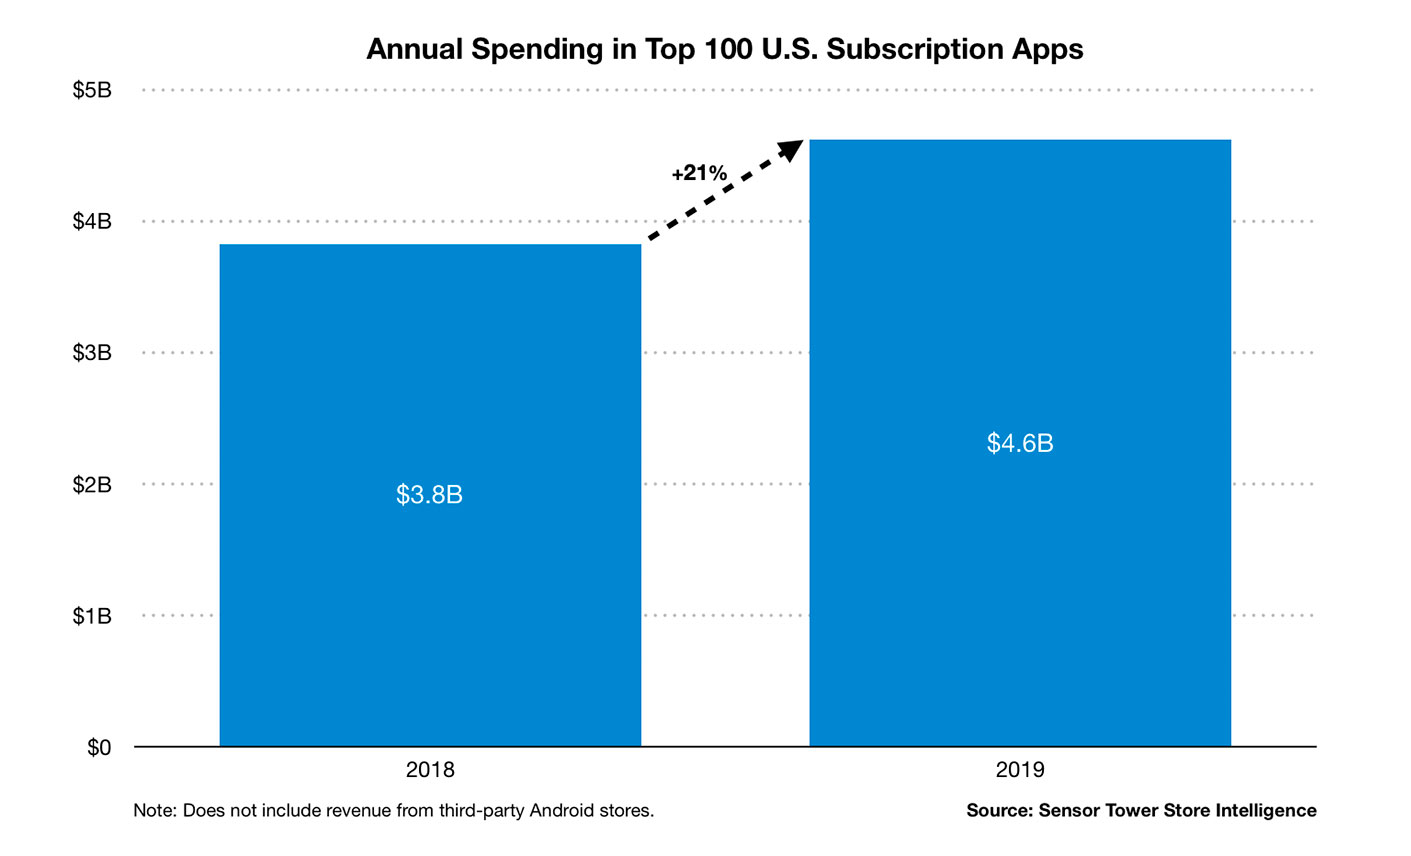 https://www.macfreak.nl/modules/news/images/zArt.annual-spending-top-united-states-subscription-apps-2019.jpg